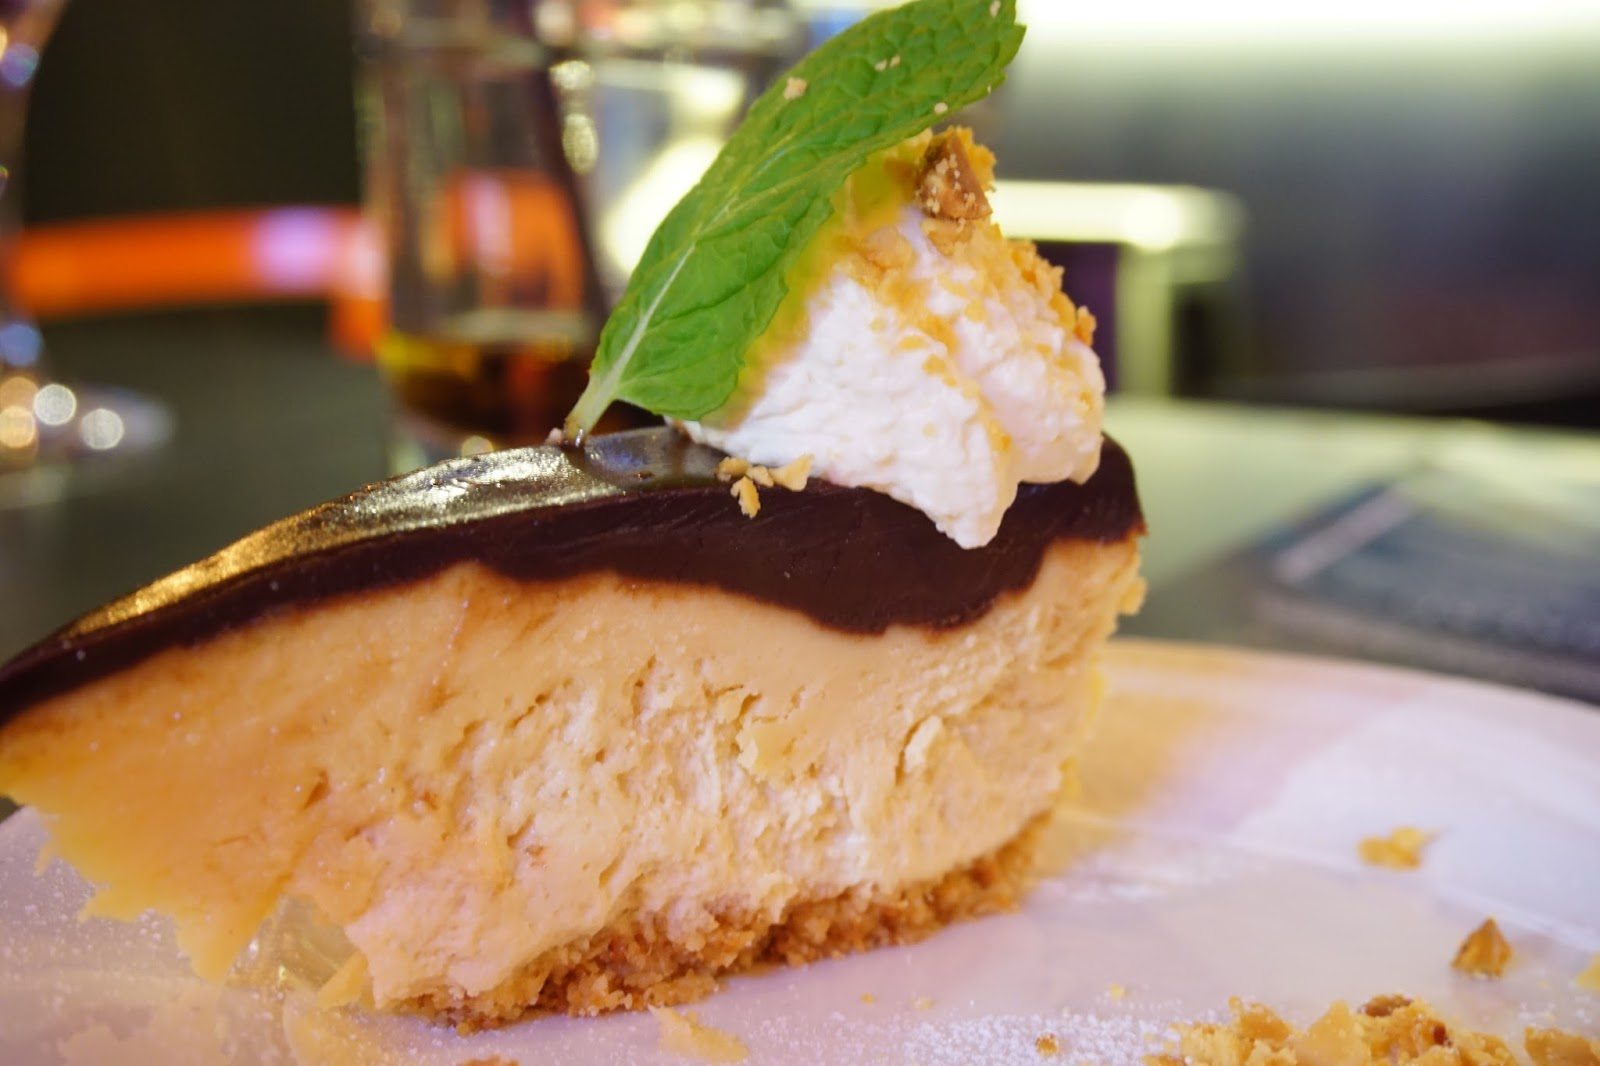 Peanut butter and chocolate pie at The Curious Squire, North Adelaide